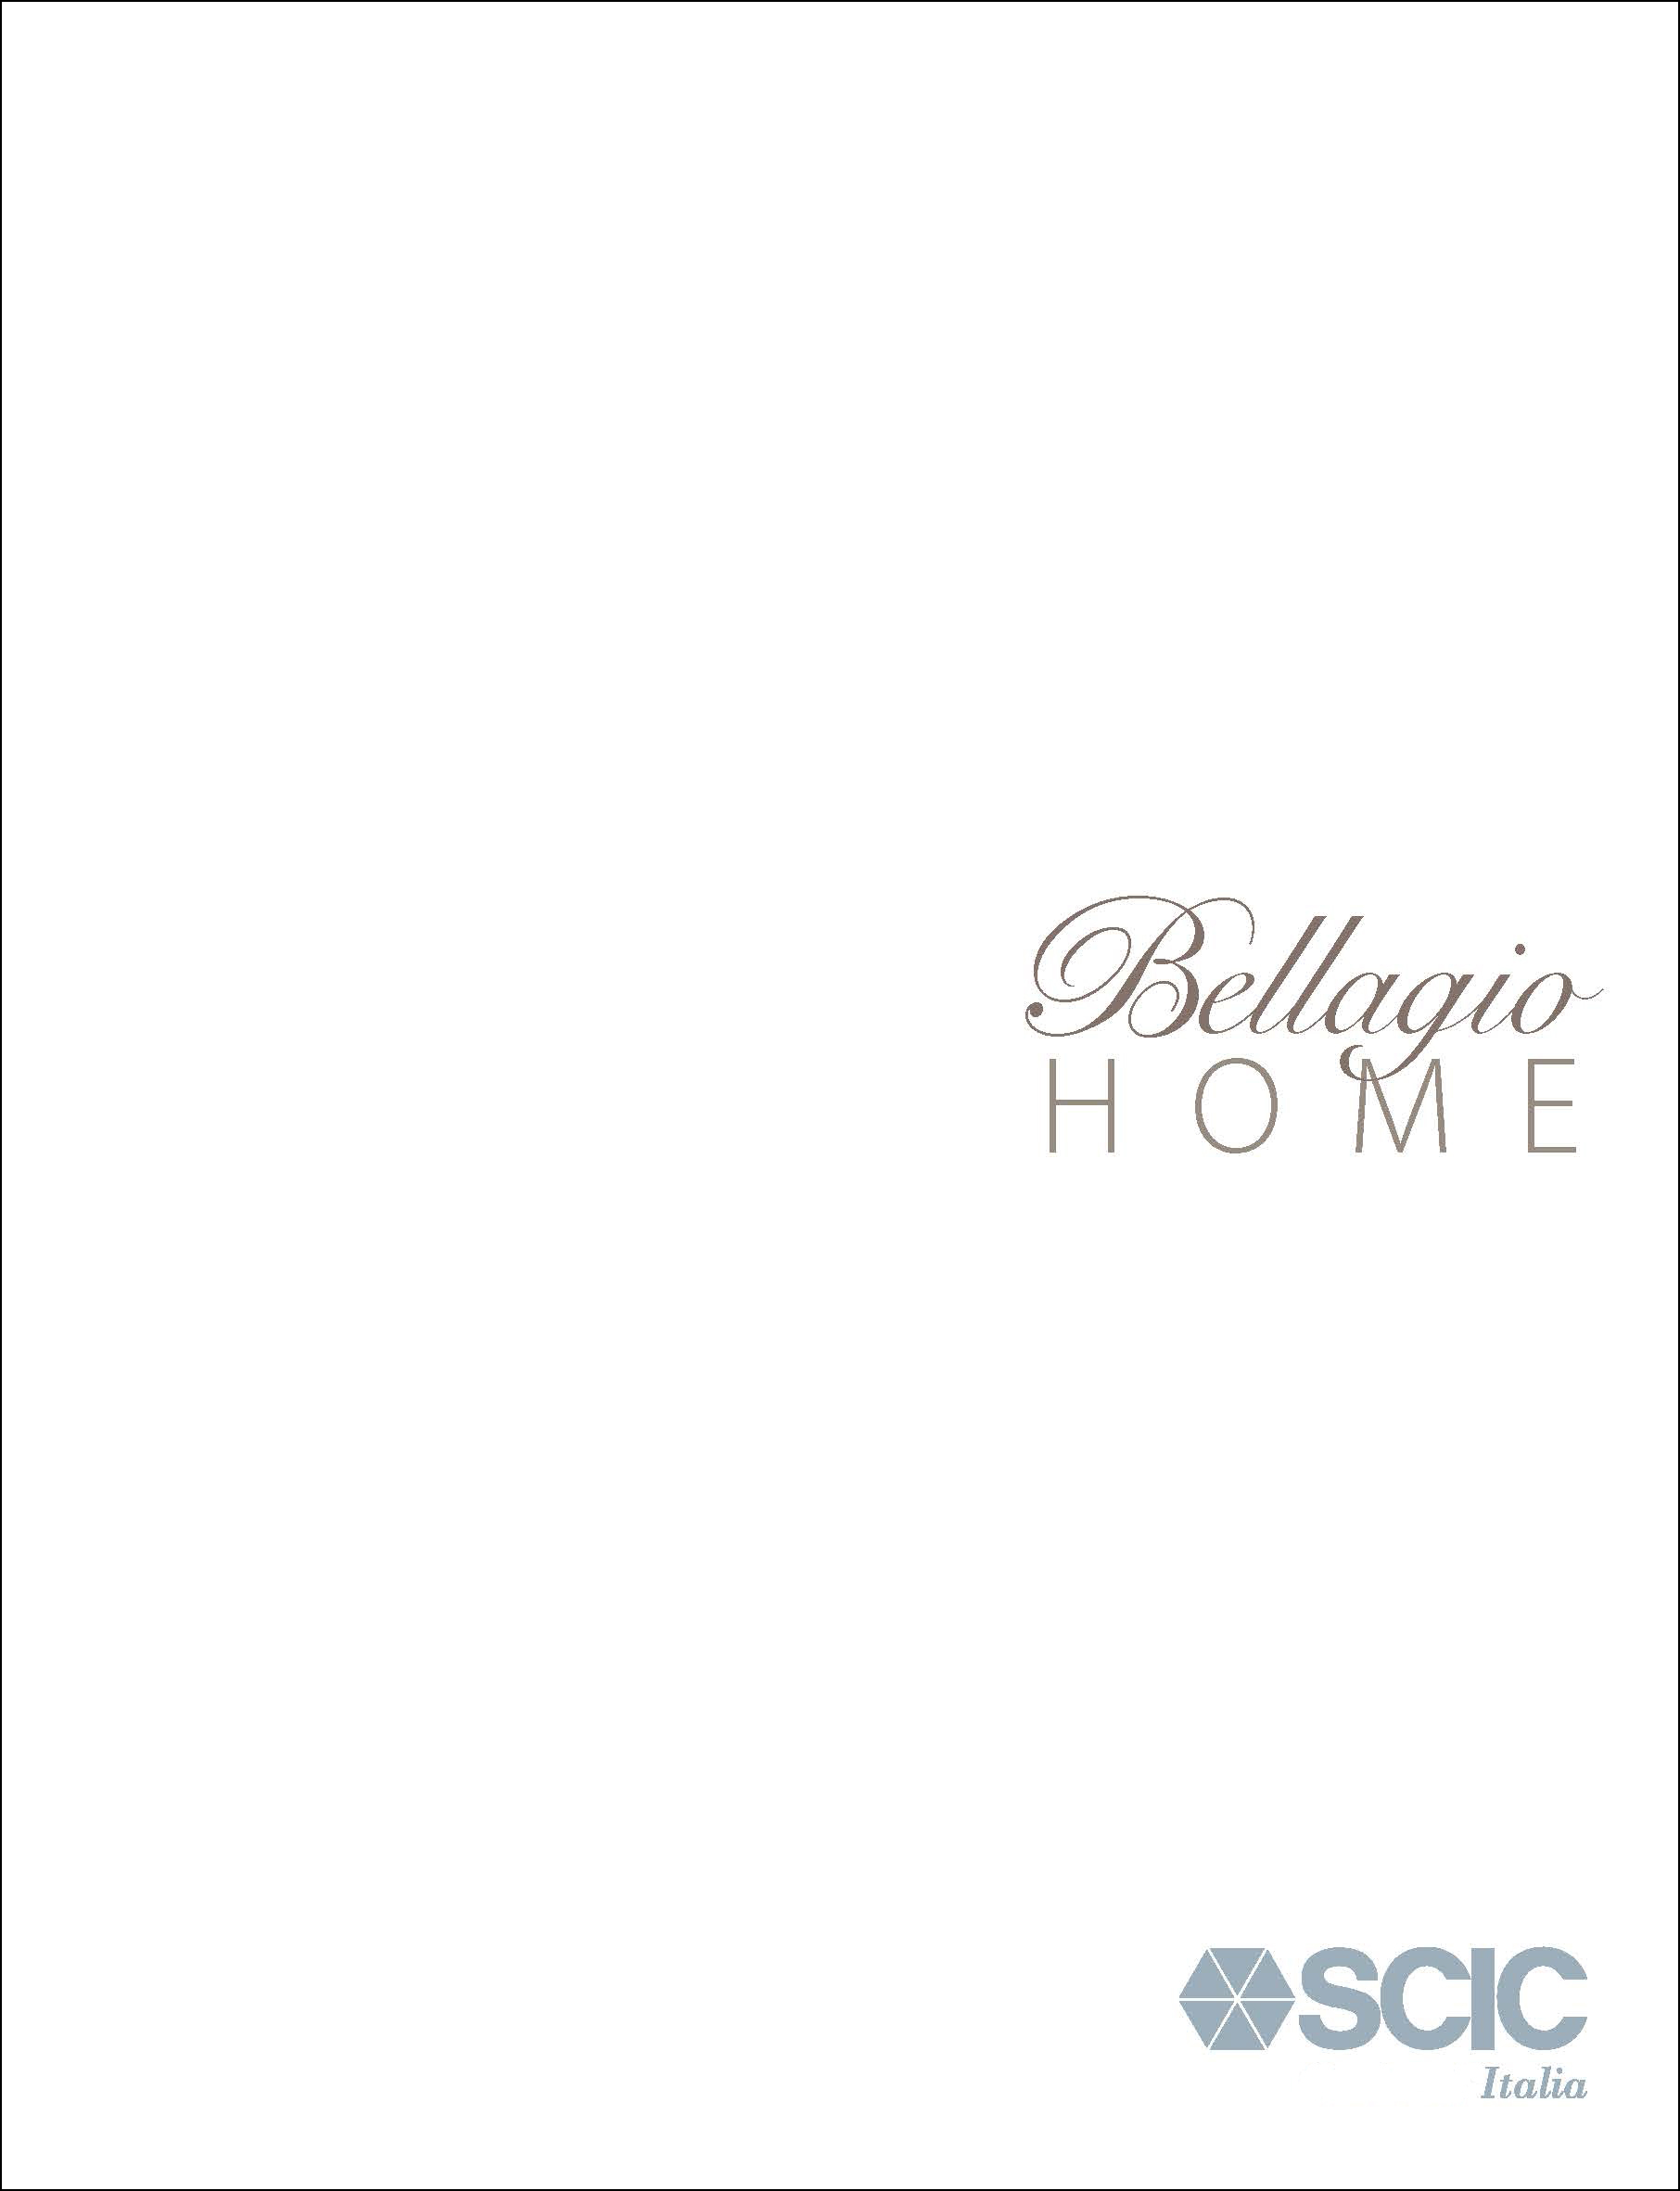 11_Bellagio-Home-1